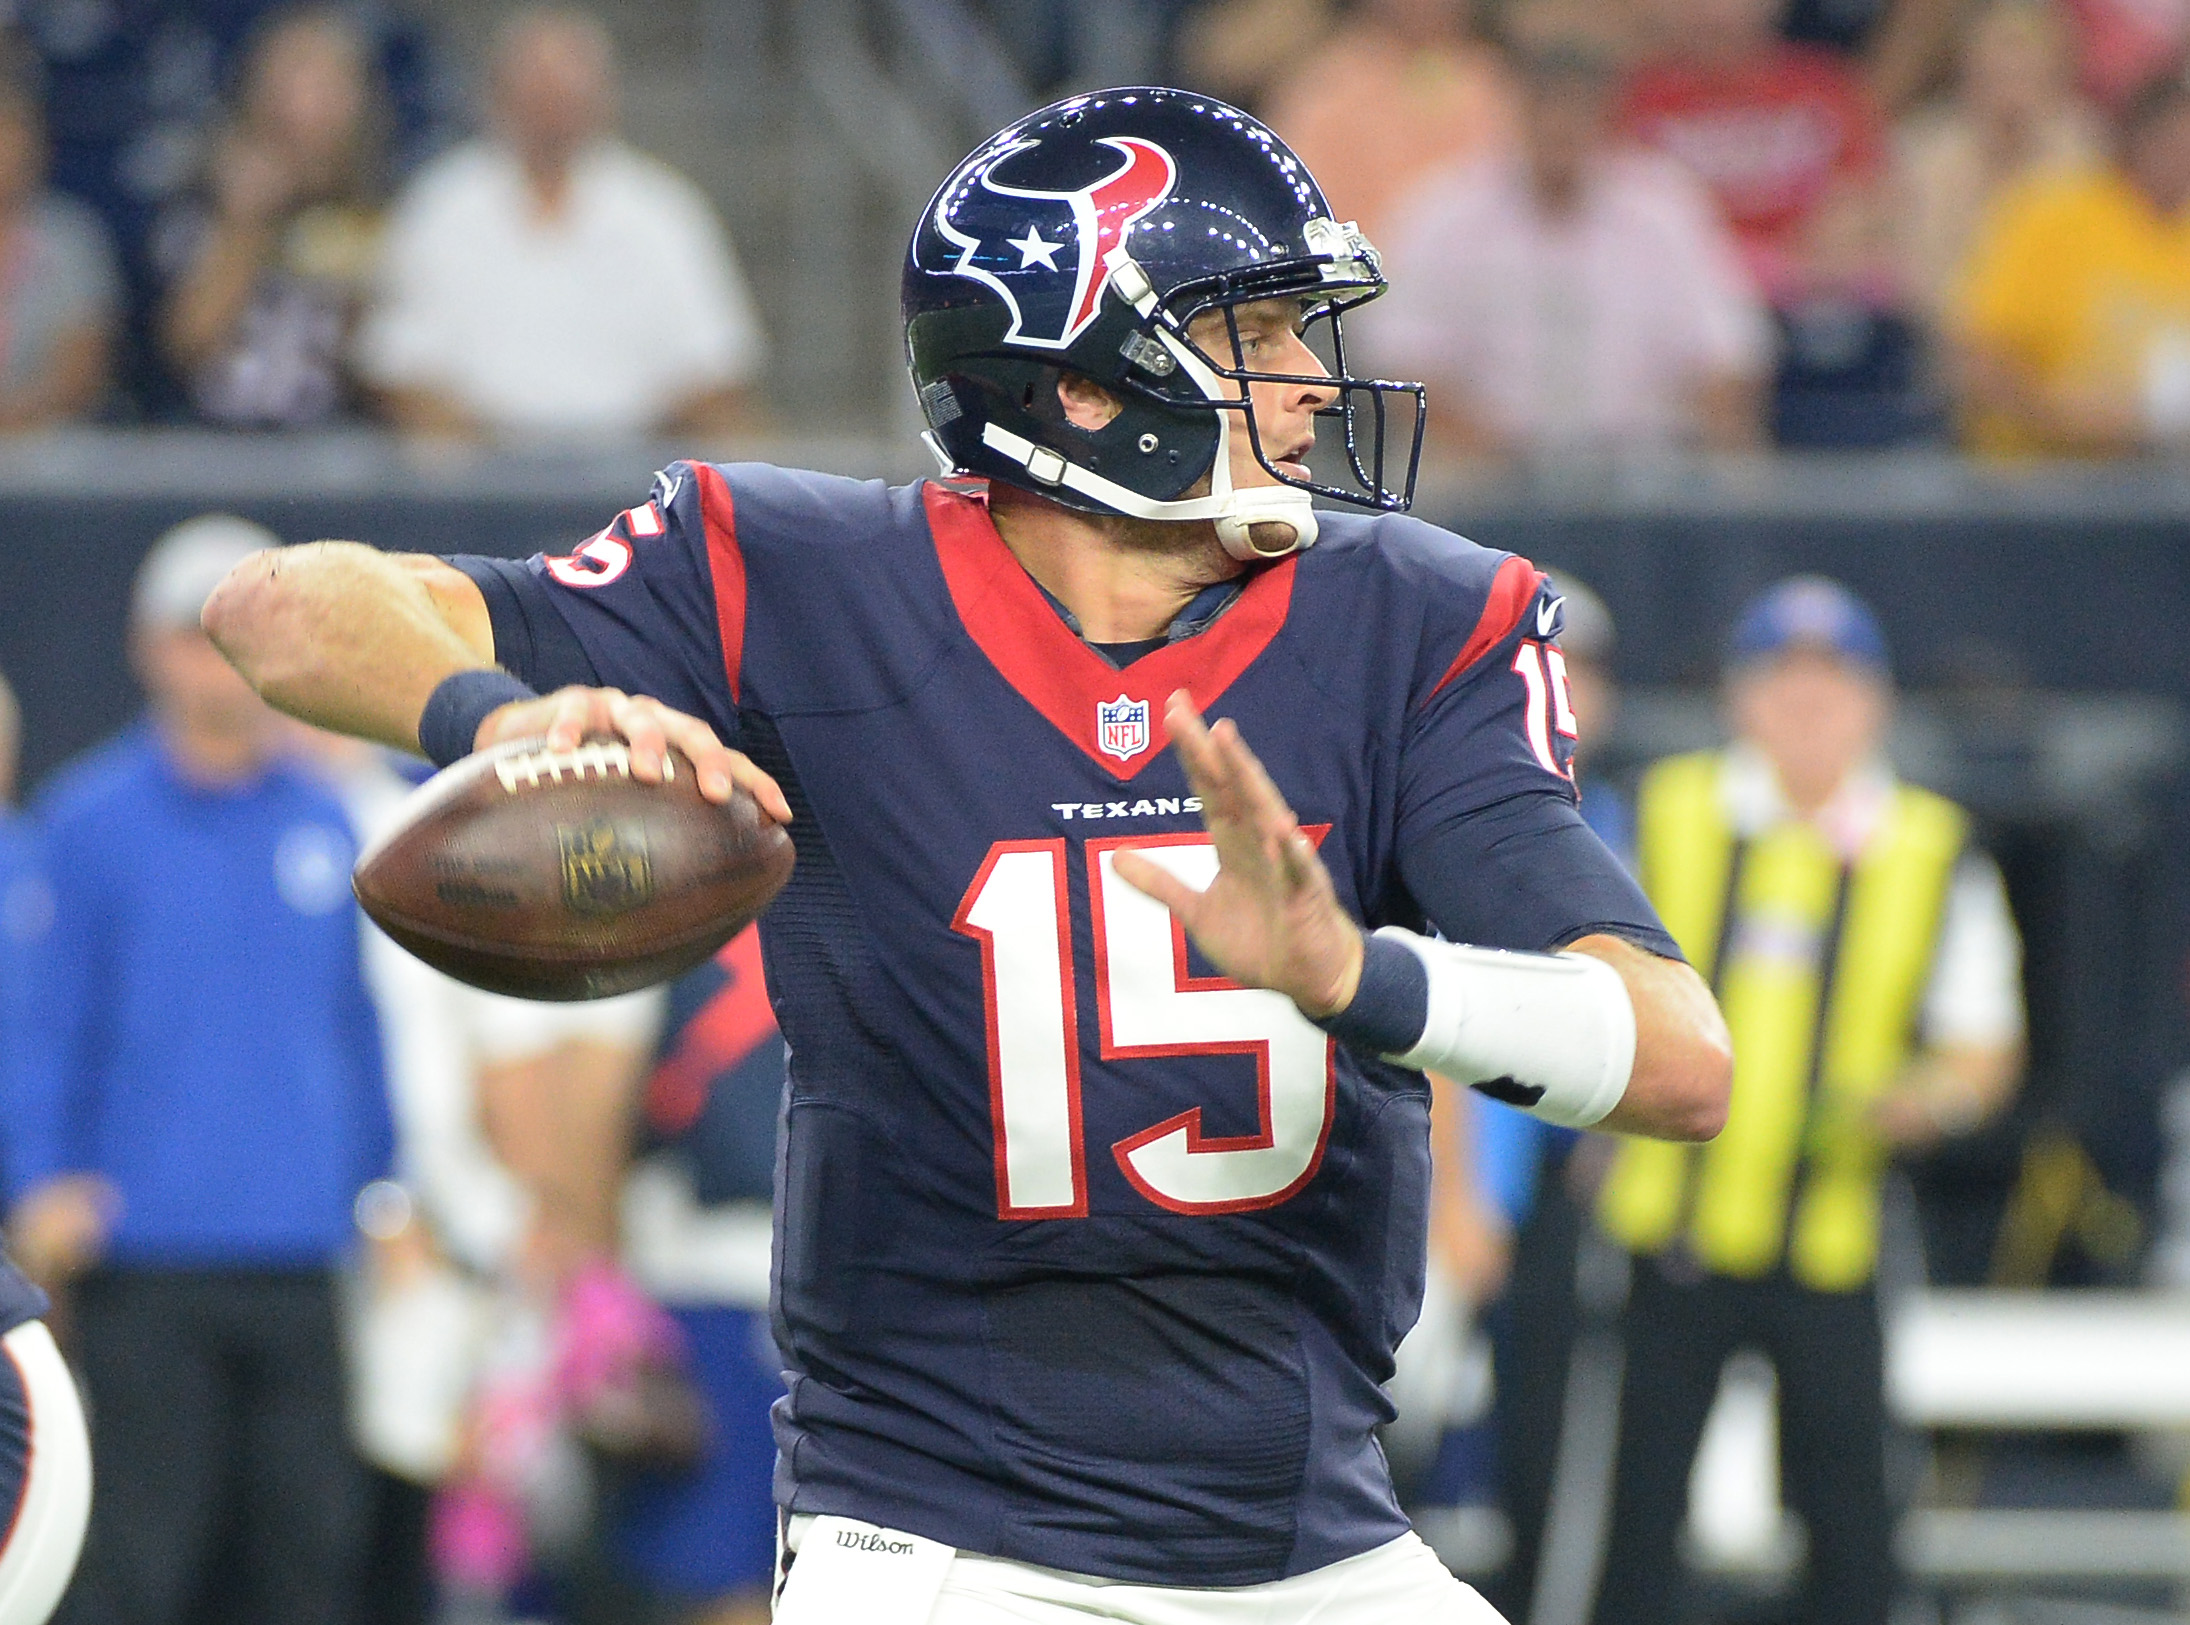 Houston Texans' Ryan Mallett (15) throws against the Indianapolis Colts during the first half of an NFL football game Thursday, Oct. 8, 2015, in Houston. (AP Photo/George Bridges)